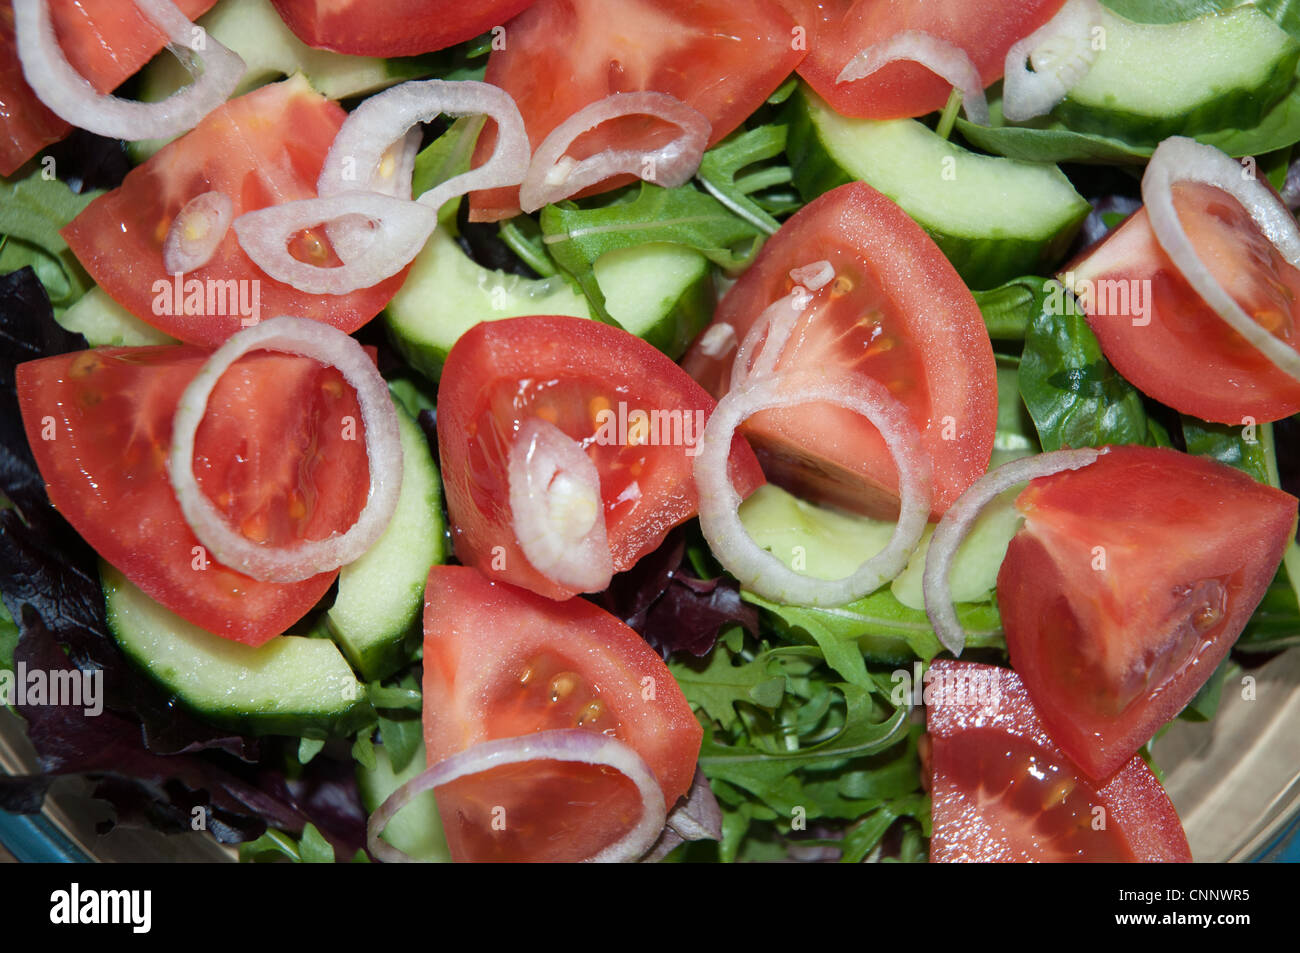 home made fresh green salad tomato lettuce onion cucumber on a serving plate - Stock Image